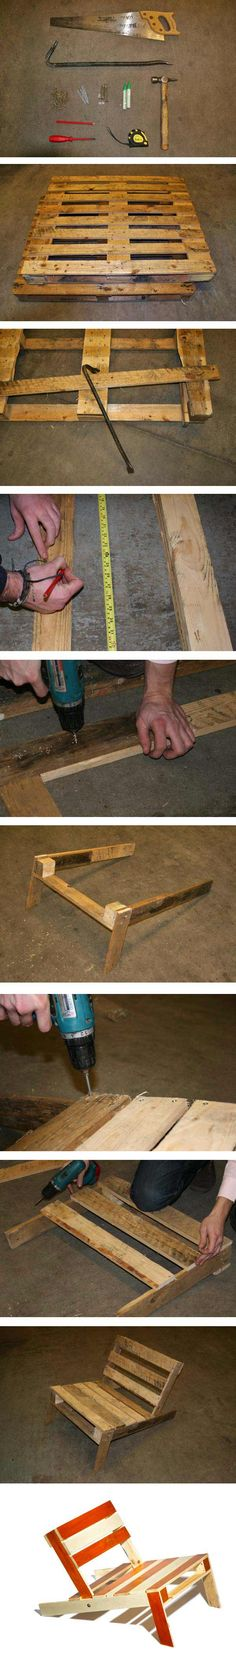 Pallet furniture project